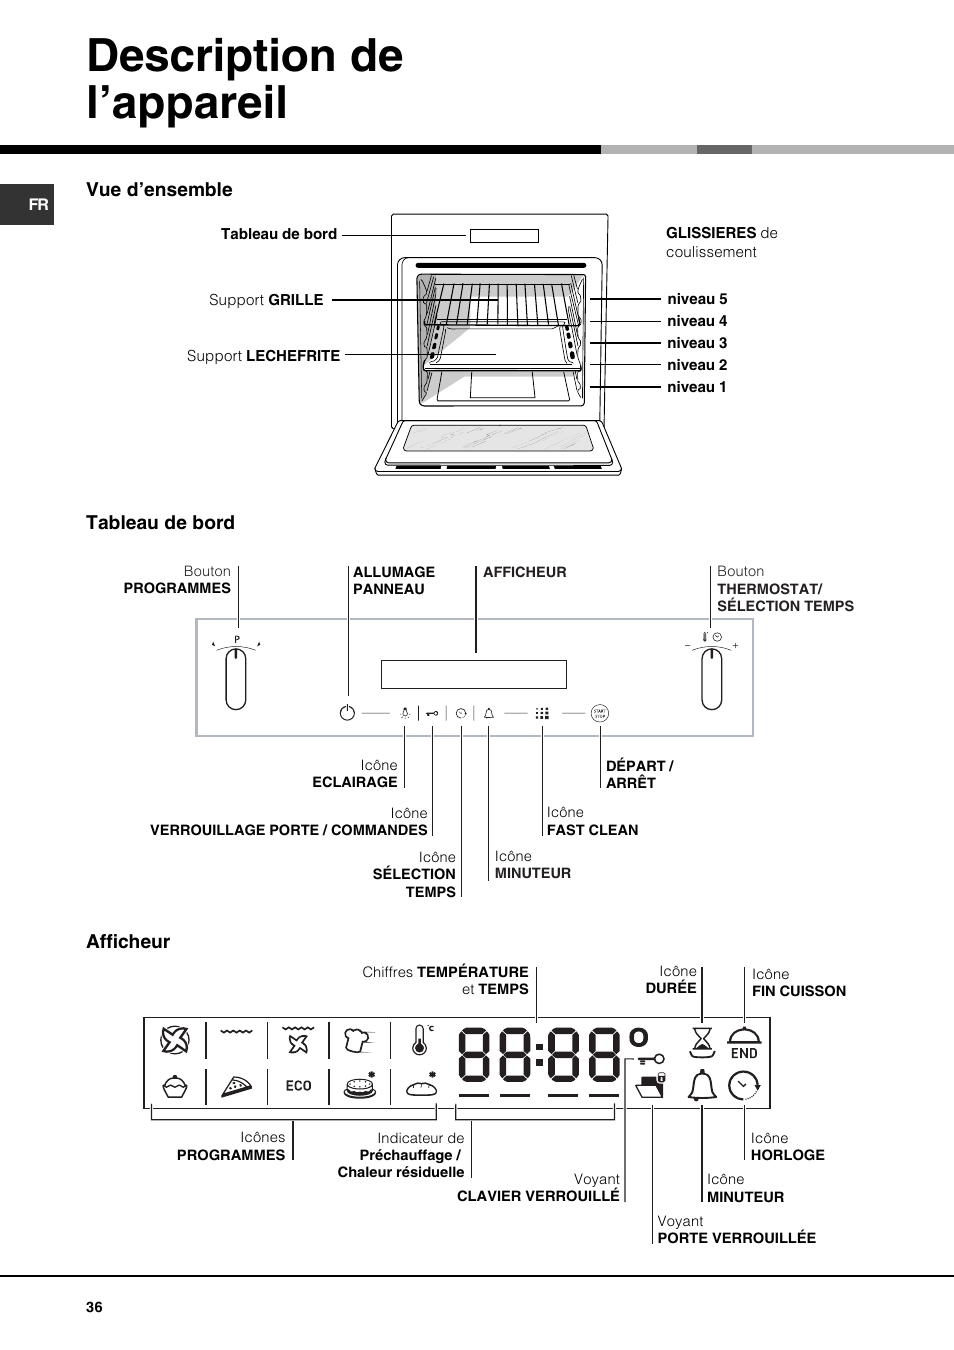 Description De L Appareil Vue D Ensemble Tableau De Bord Afficheur Hotpoint Ariston Fk 892ej P 20 X Ha User Manual Page 36 80 Original Mode